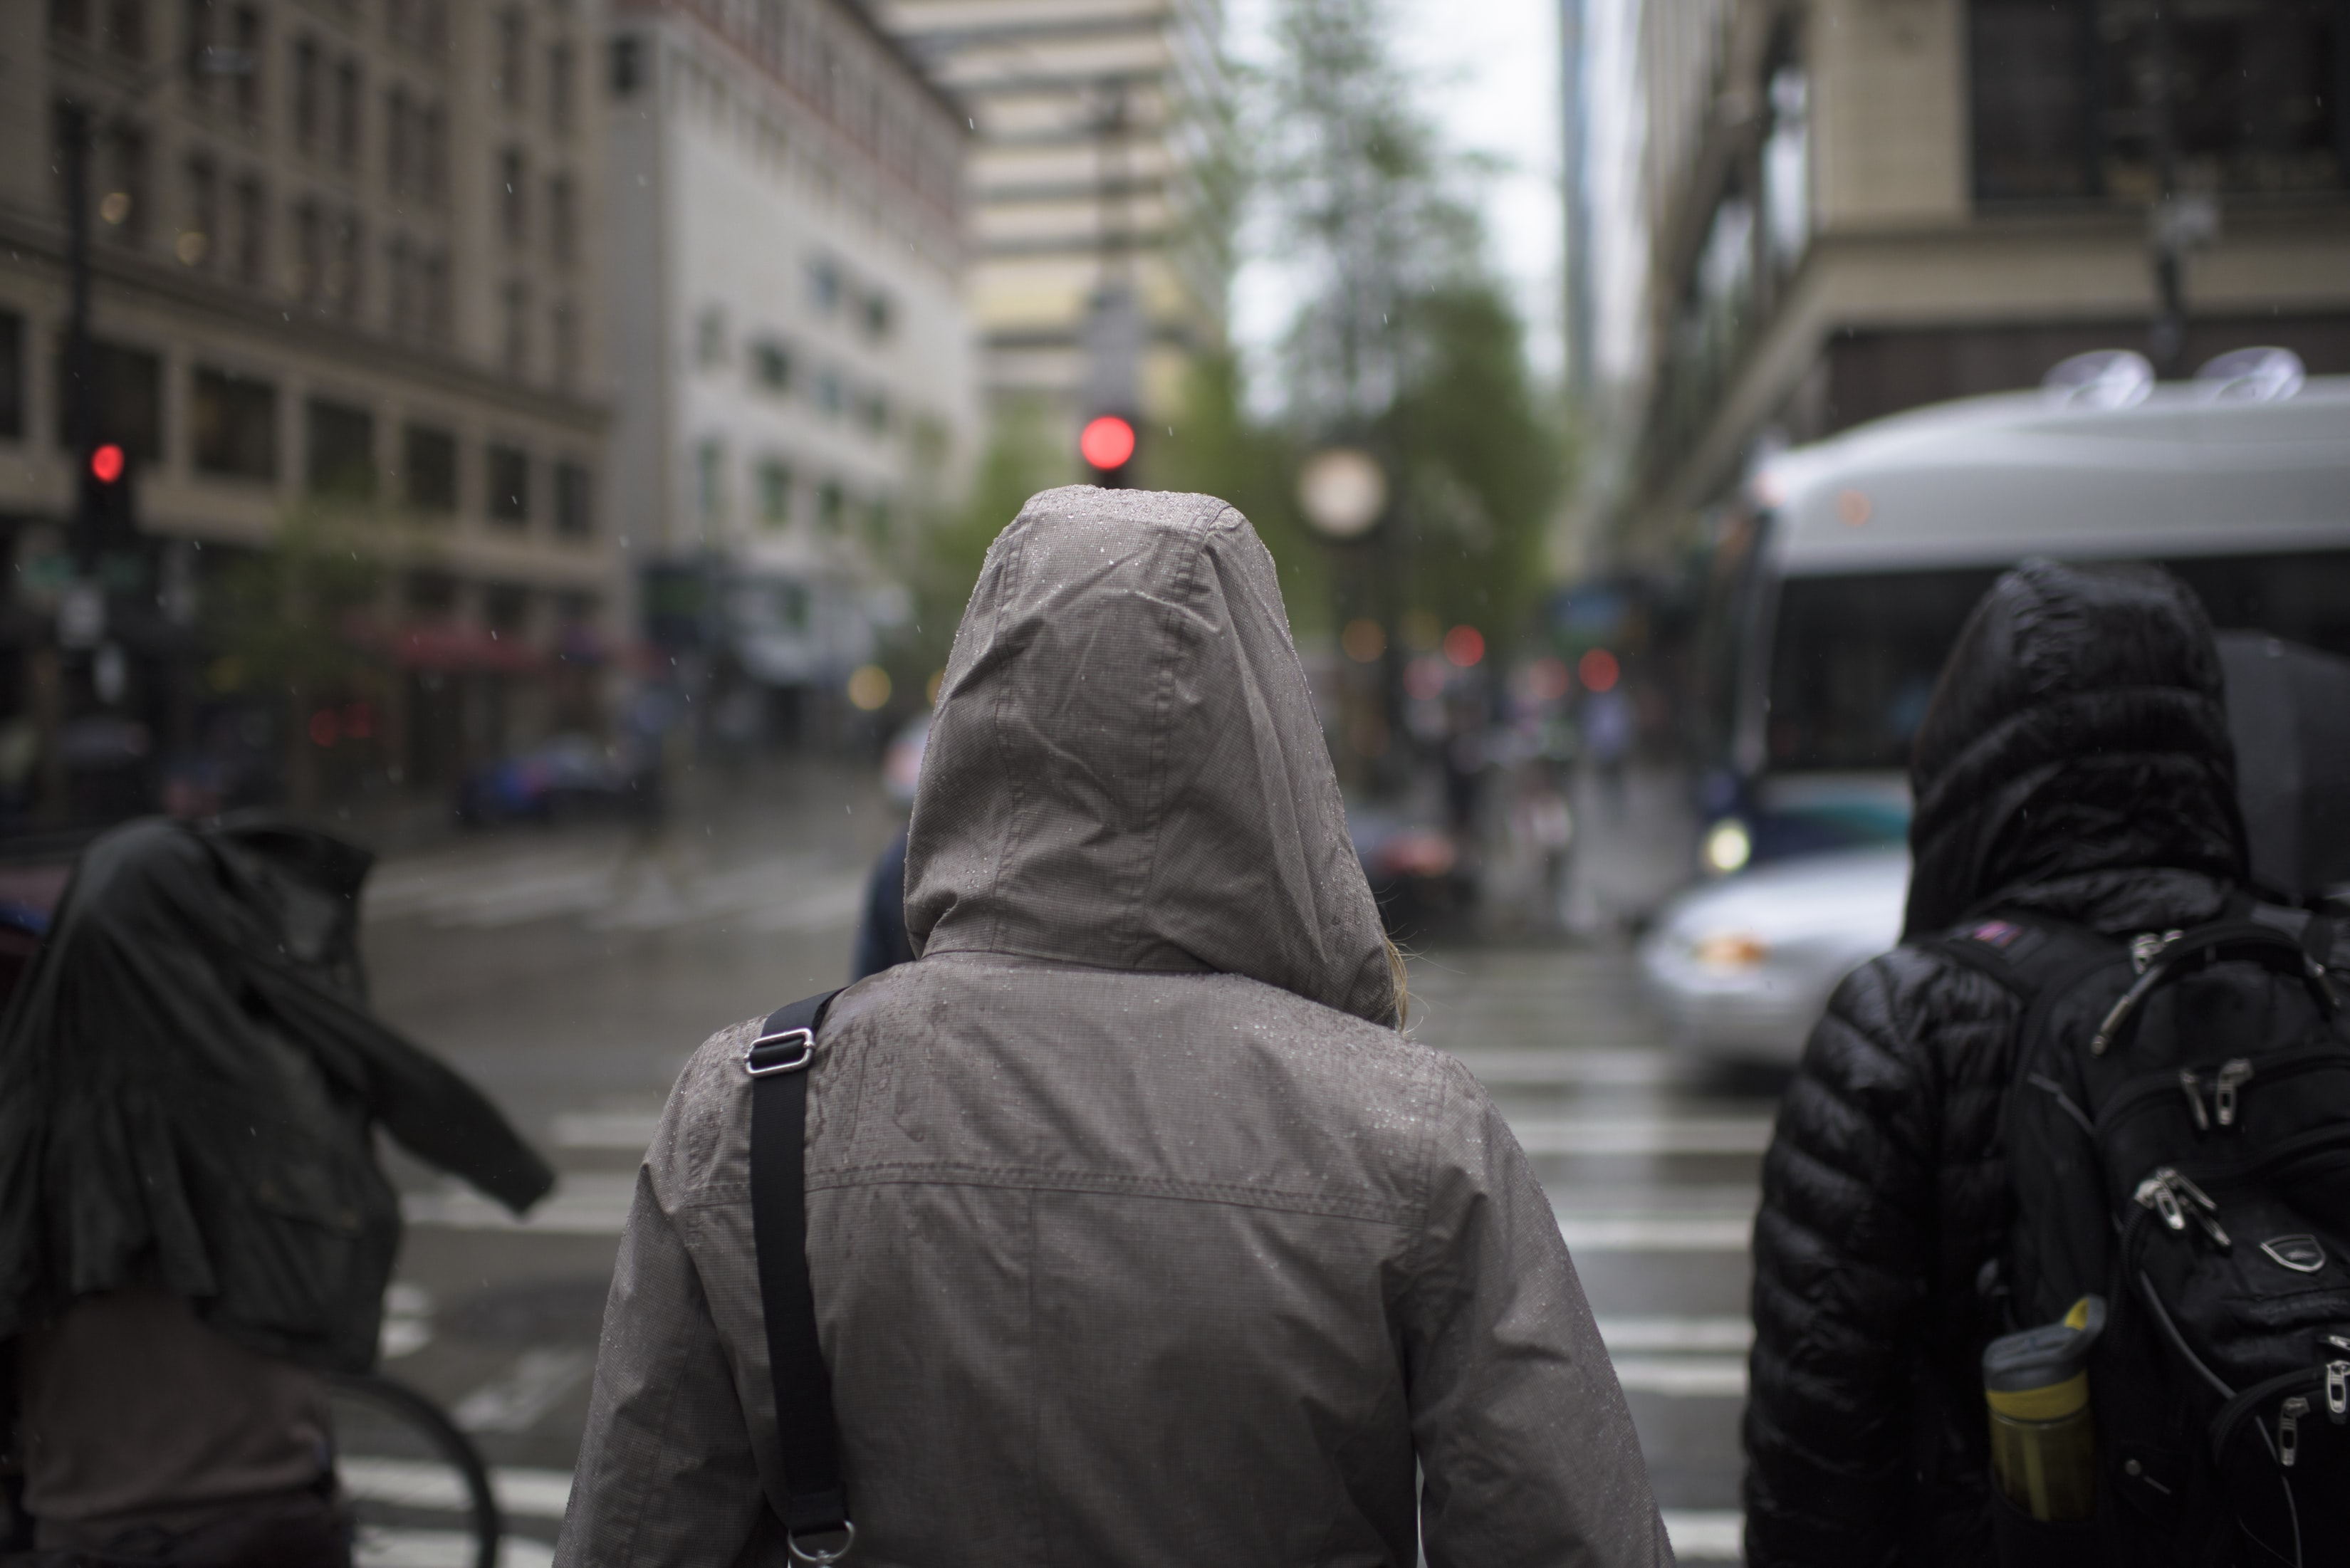 People in downtown Seattle wearing rain jackets